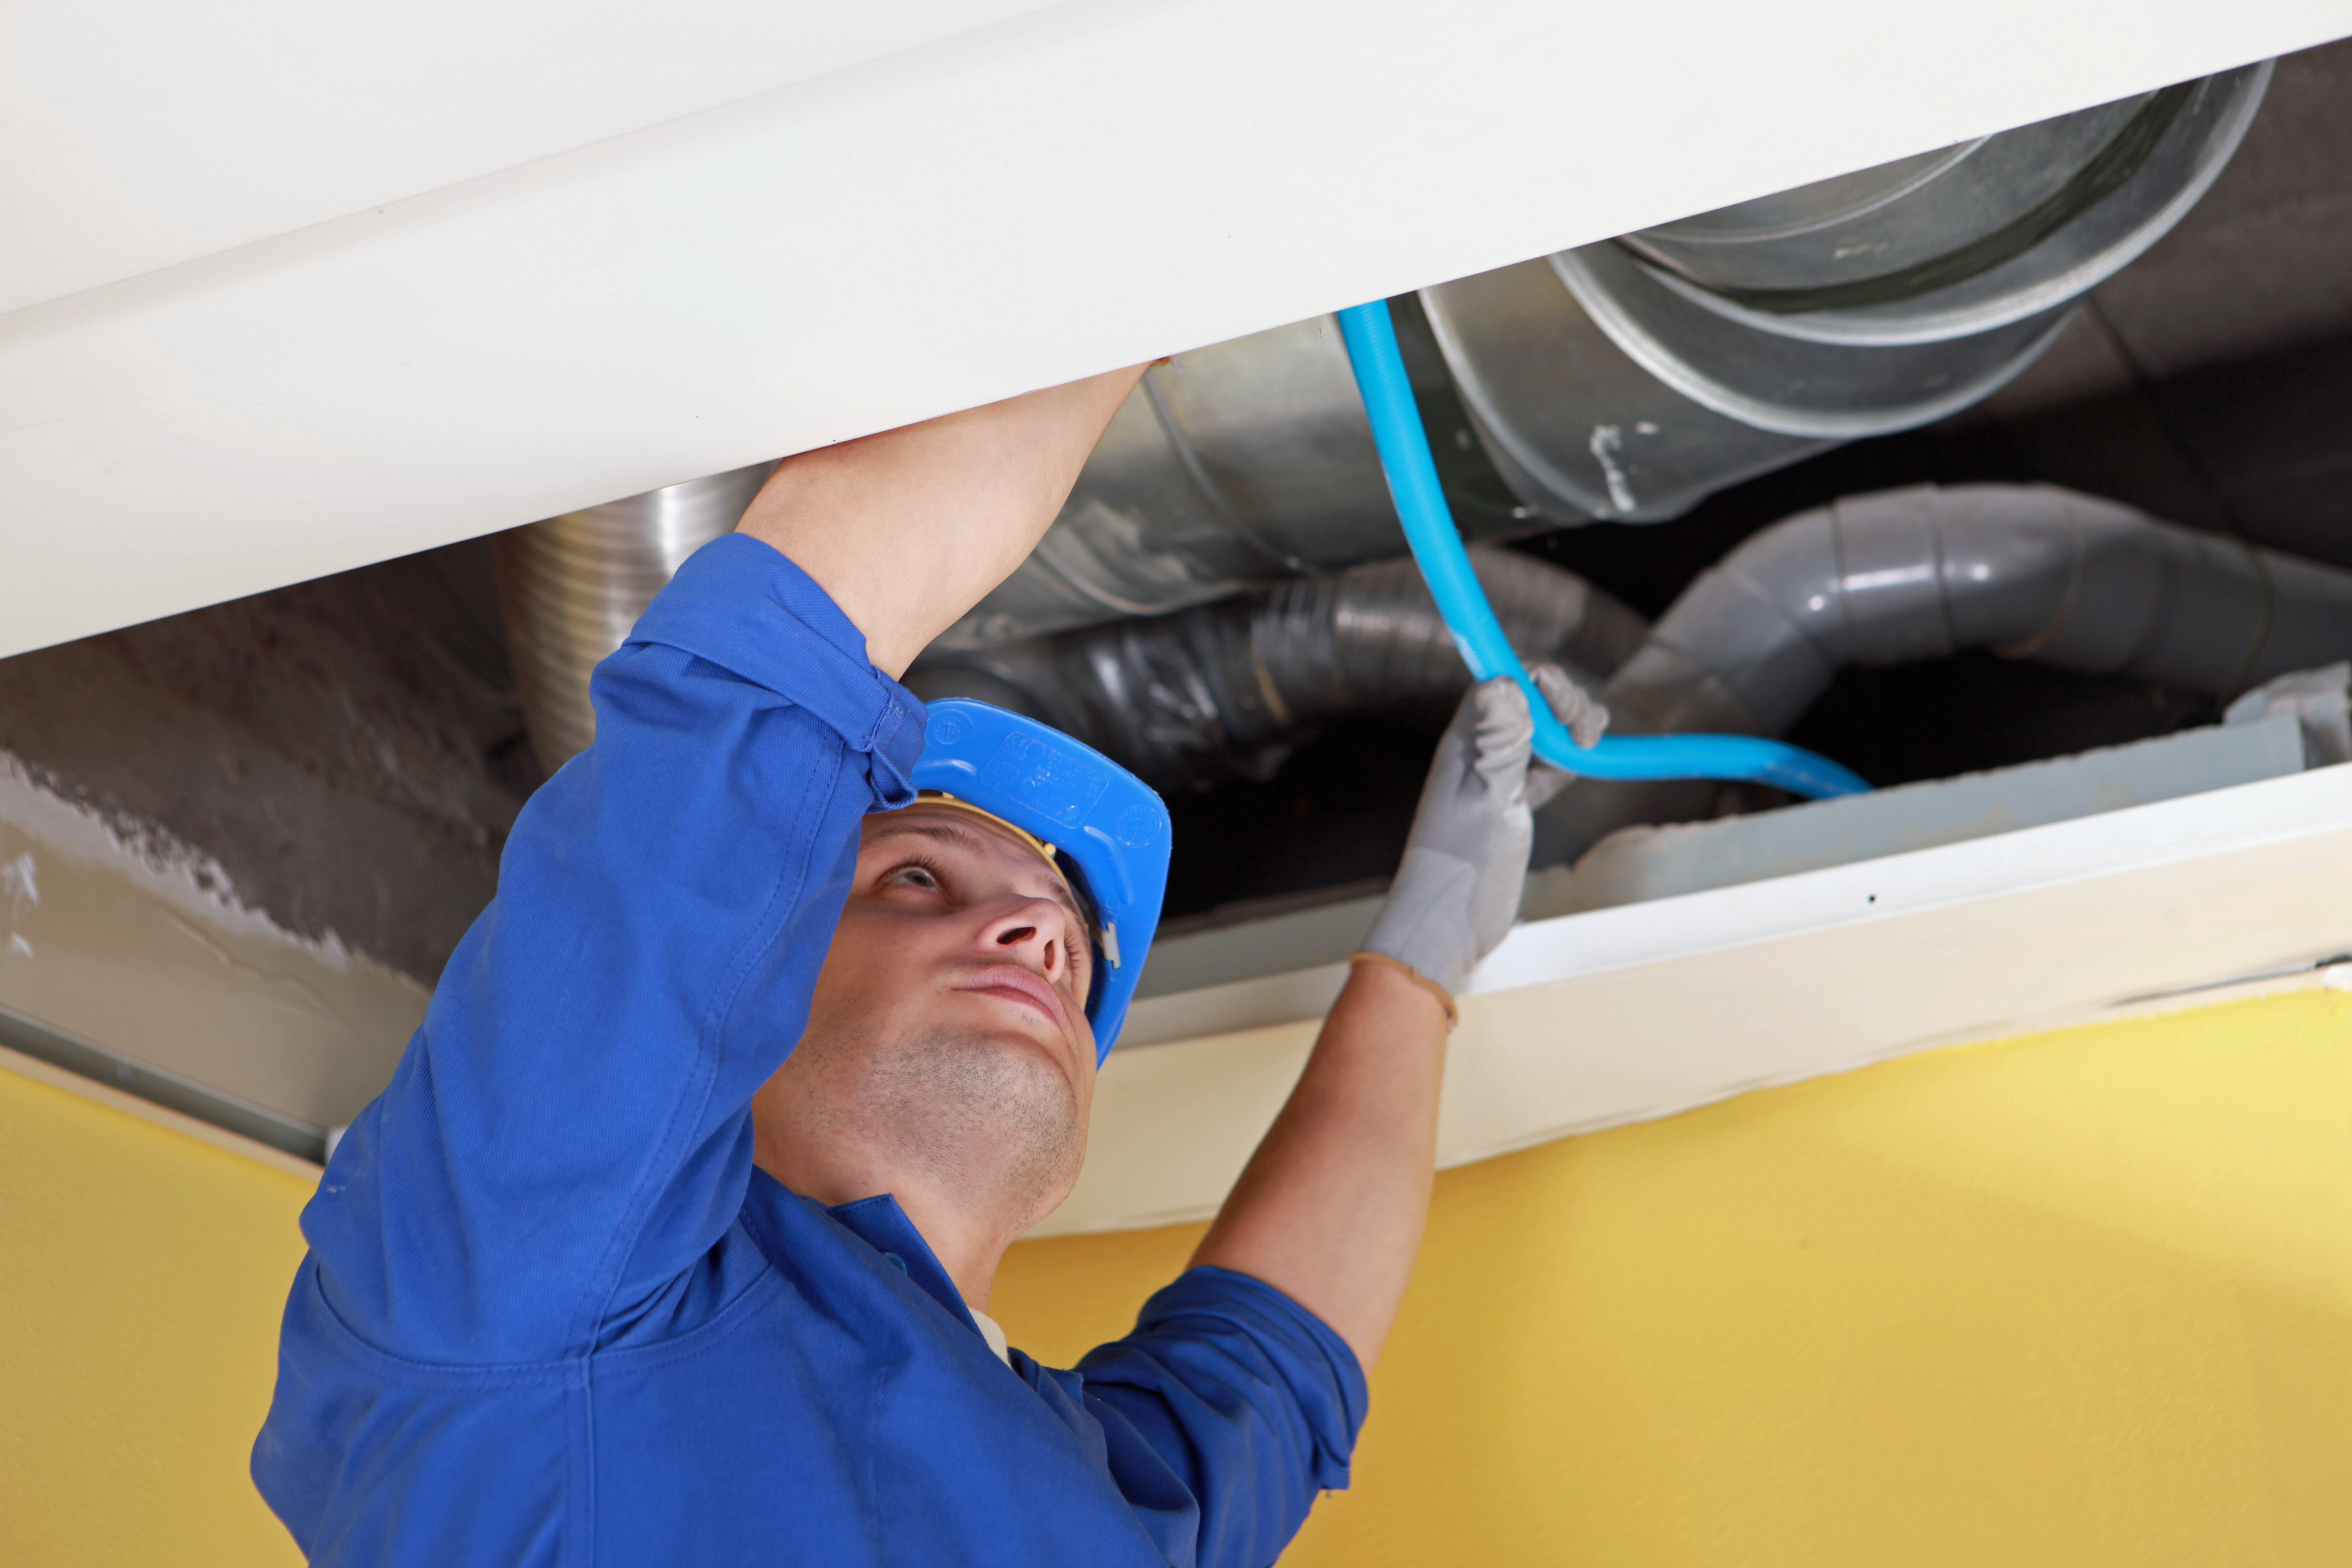 Dirty air ducts can affect your health.